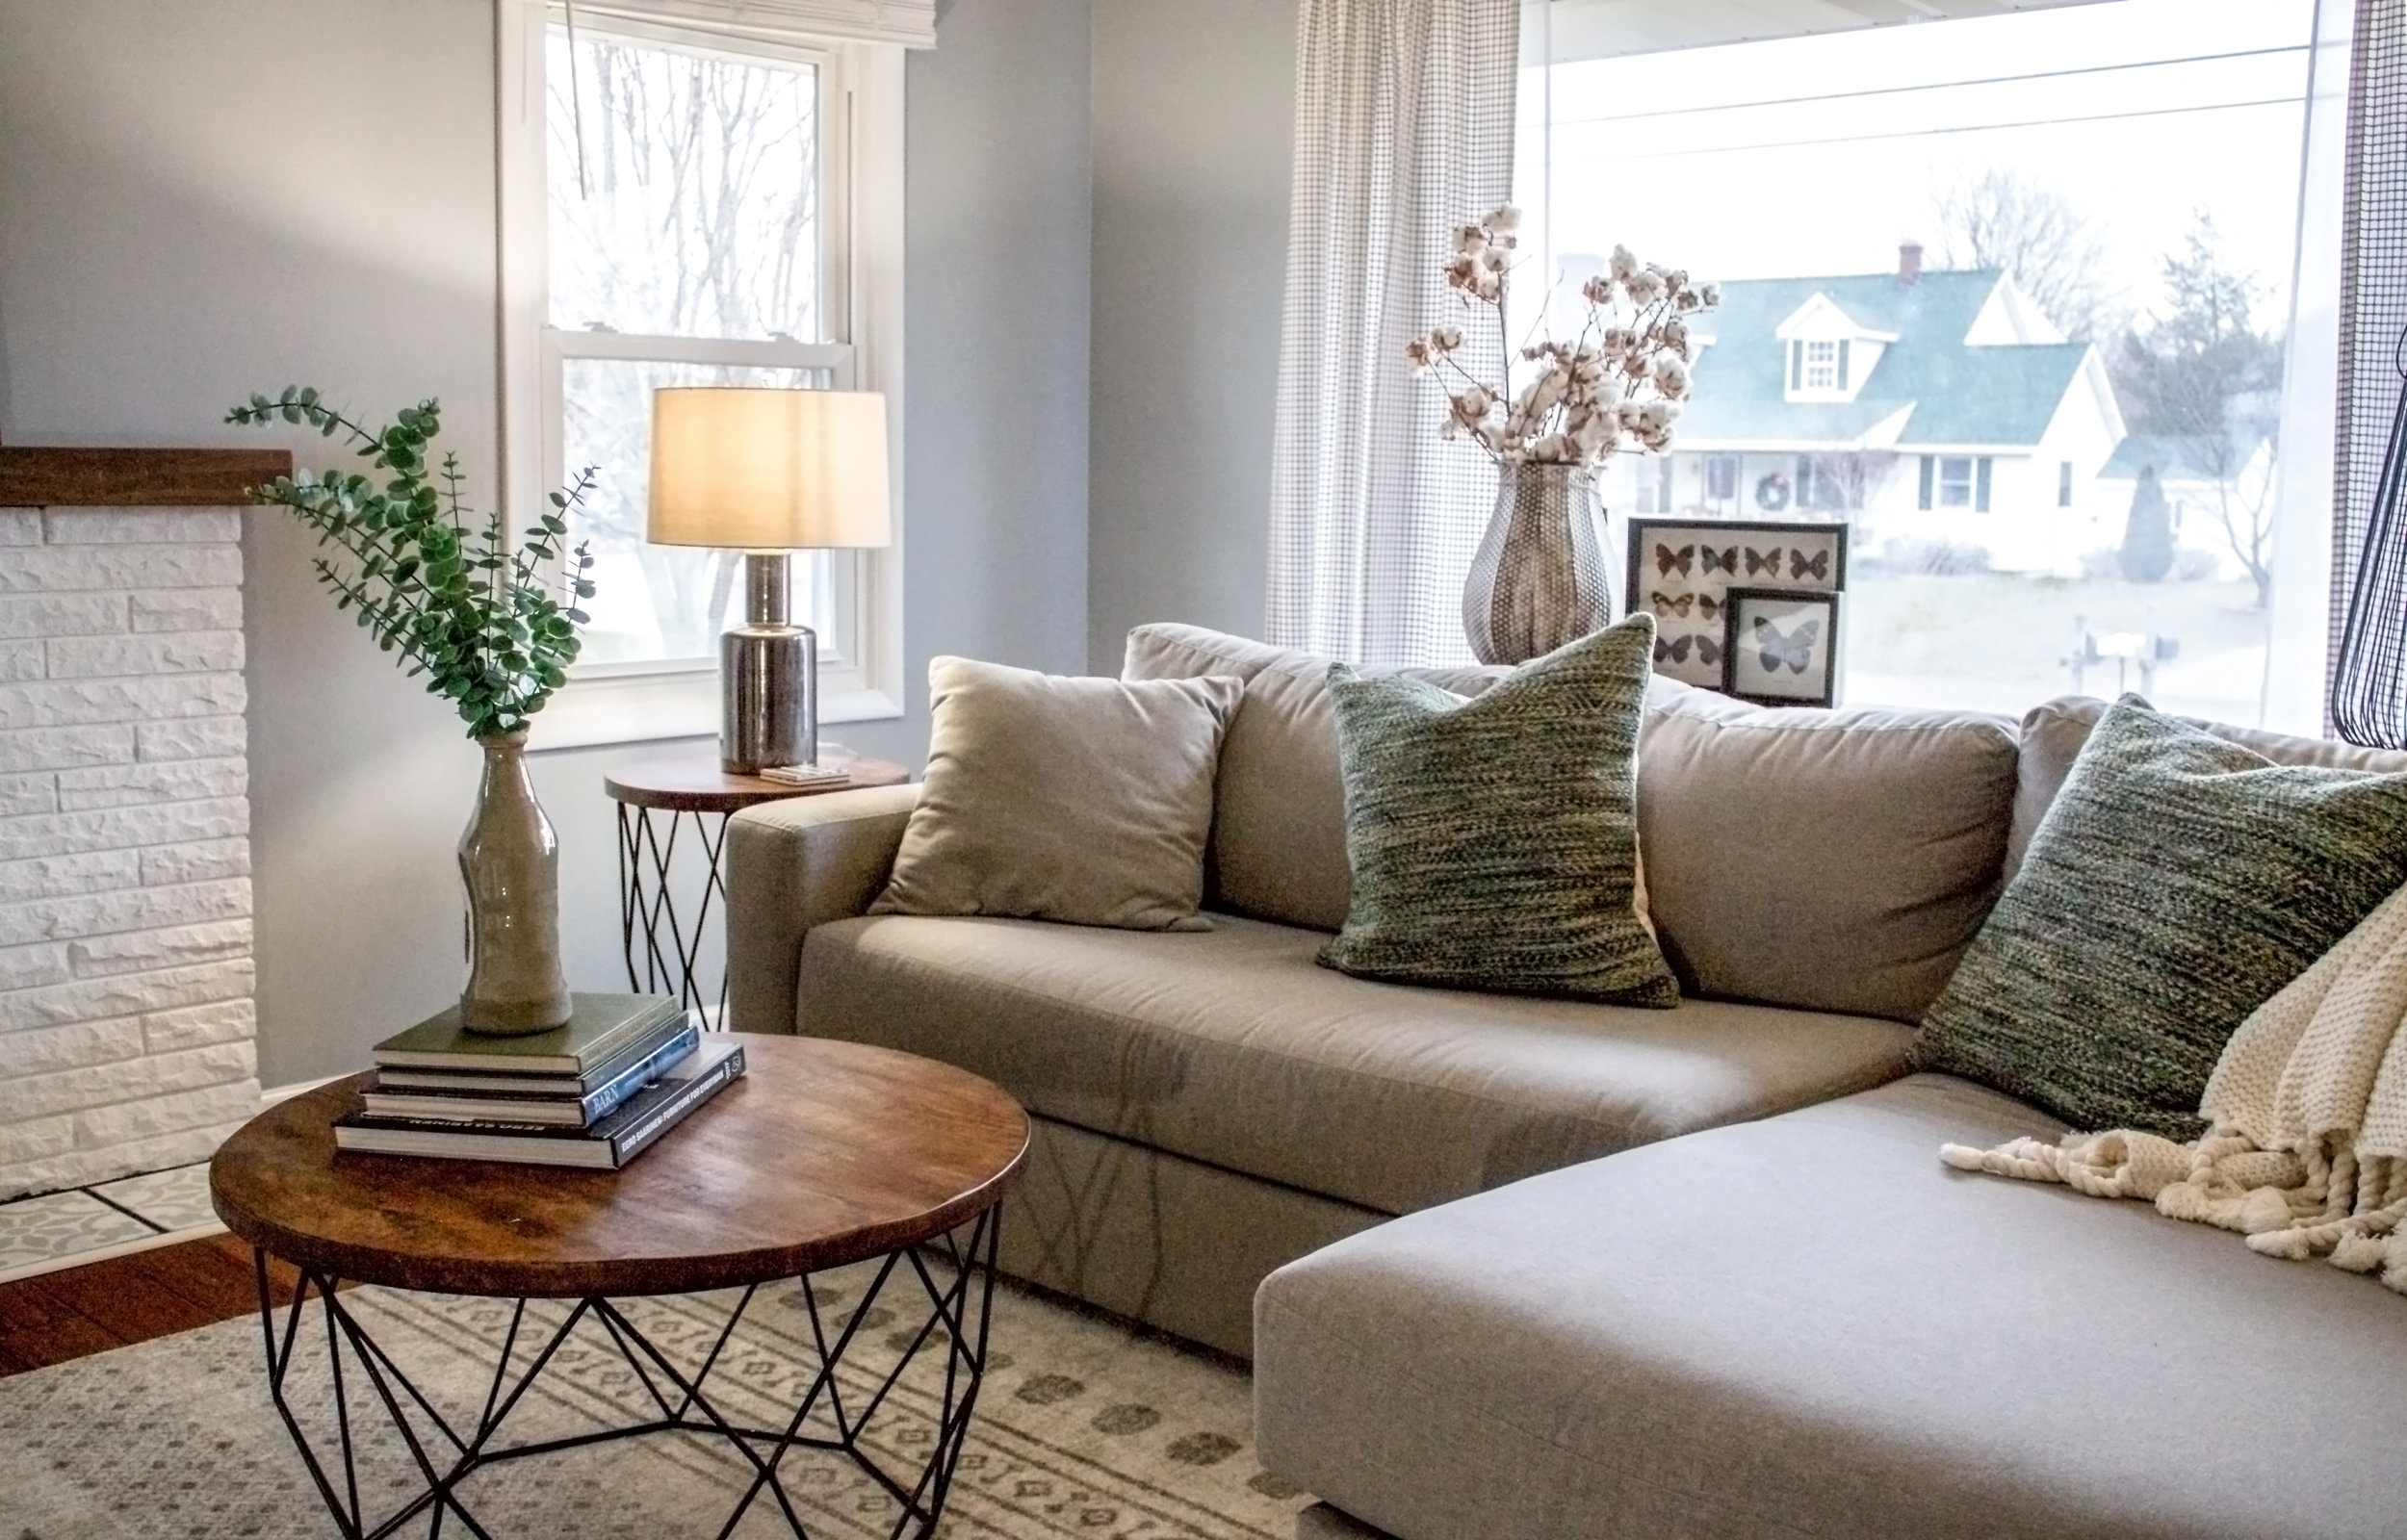 Younger sectional inside a trendy living room, living room designed by an online interior designer, abbreviated design provides online interior design services in Grand Rapids Michigan,